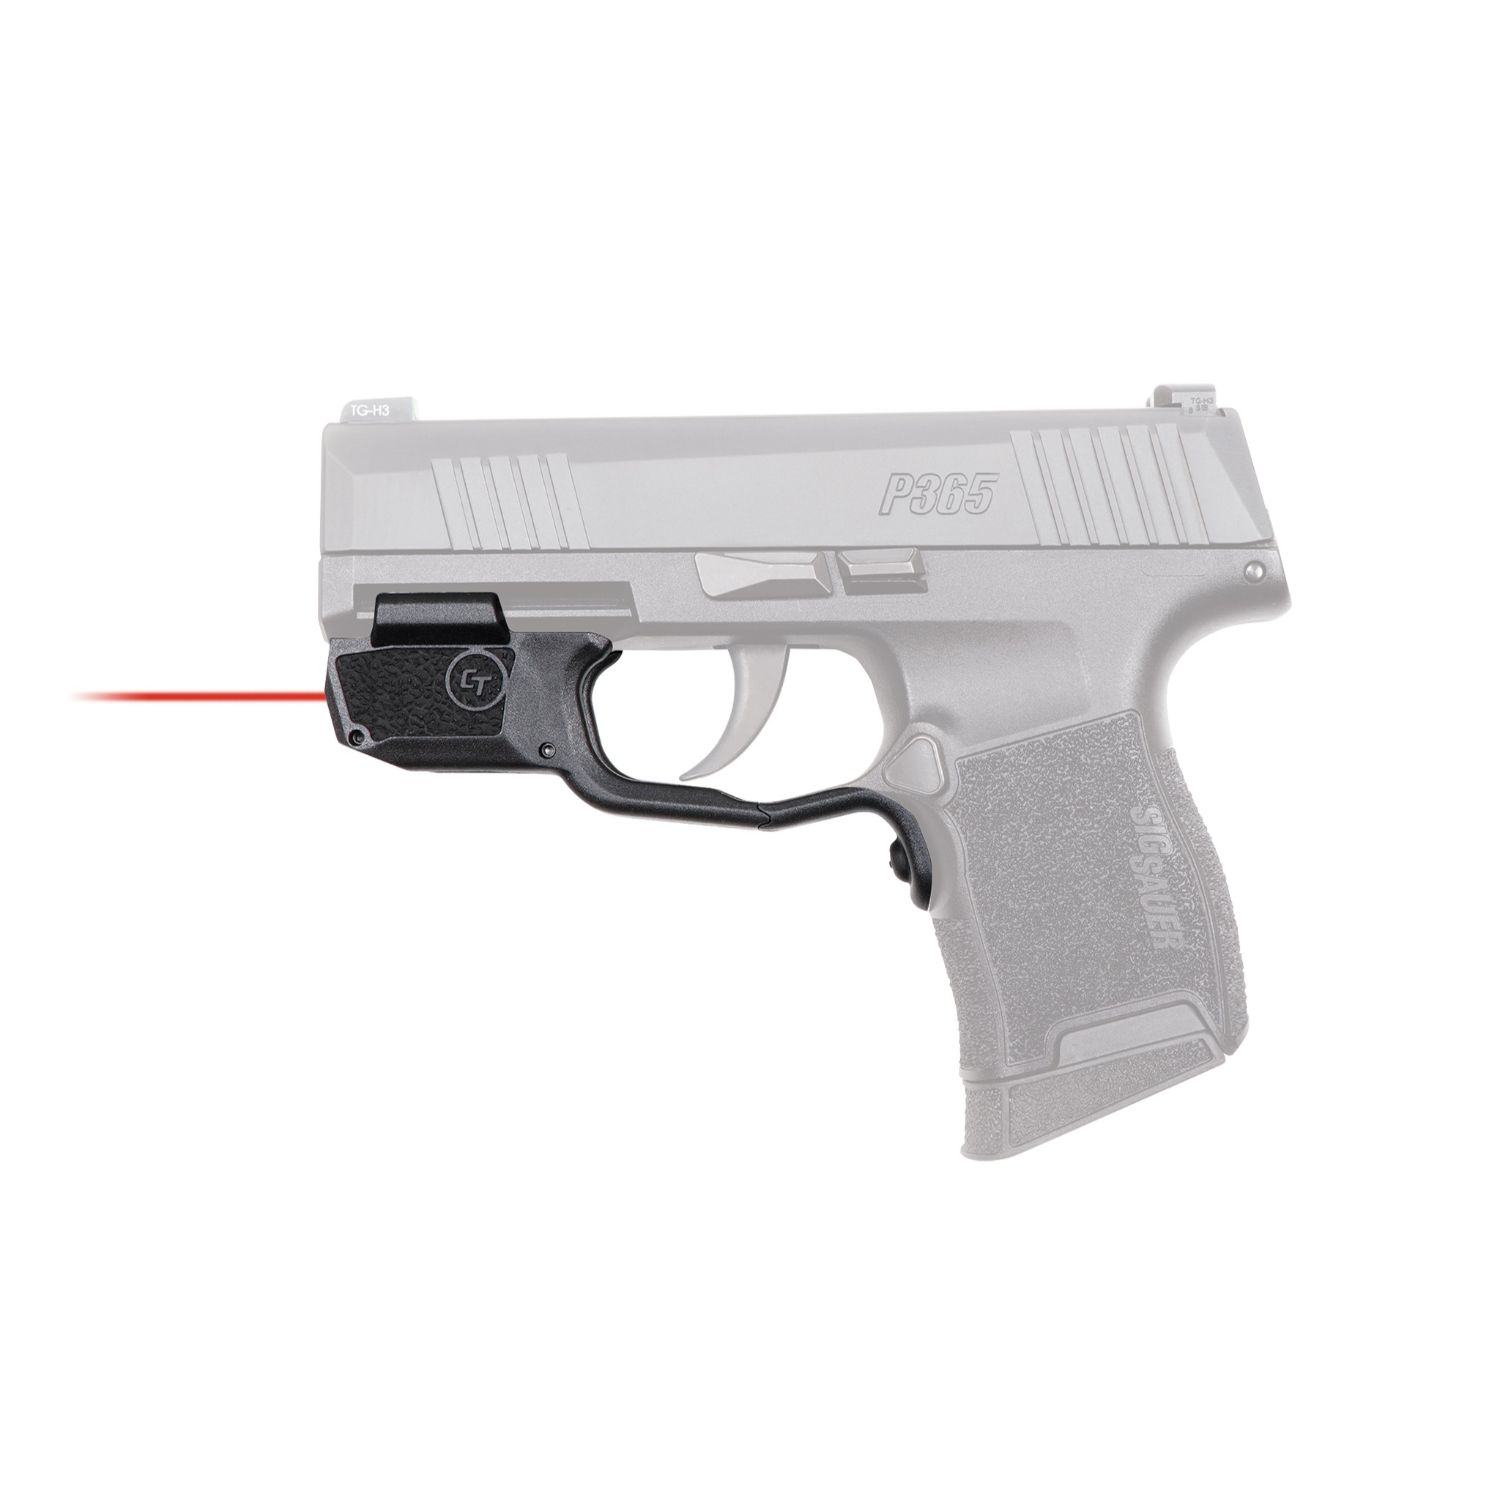 Crimson Trace LG-422 Red Laser Sight for Sig Sauer P365